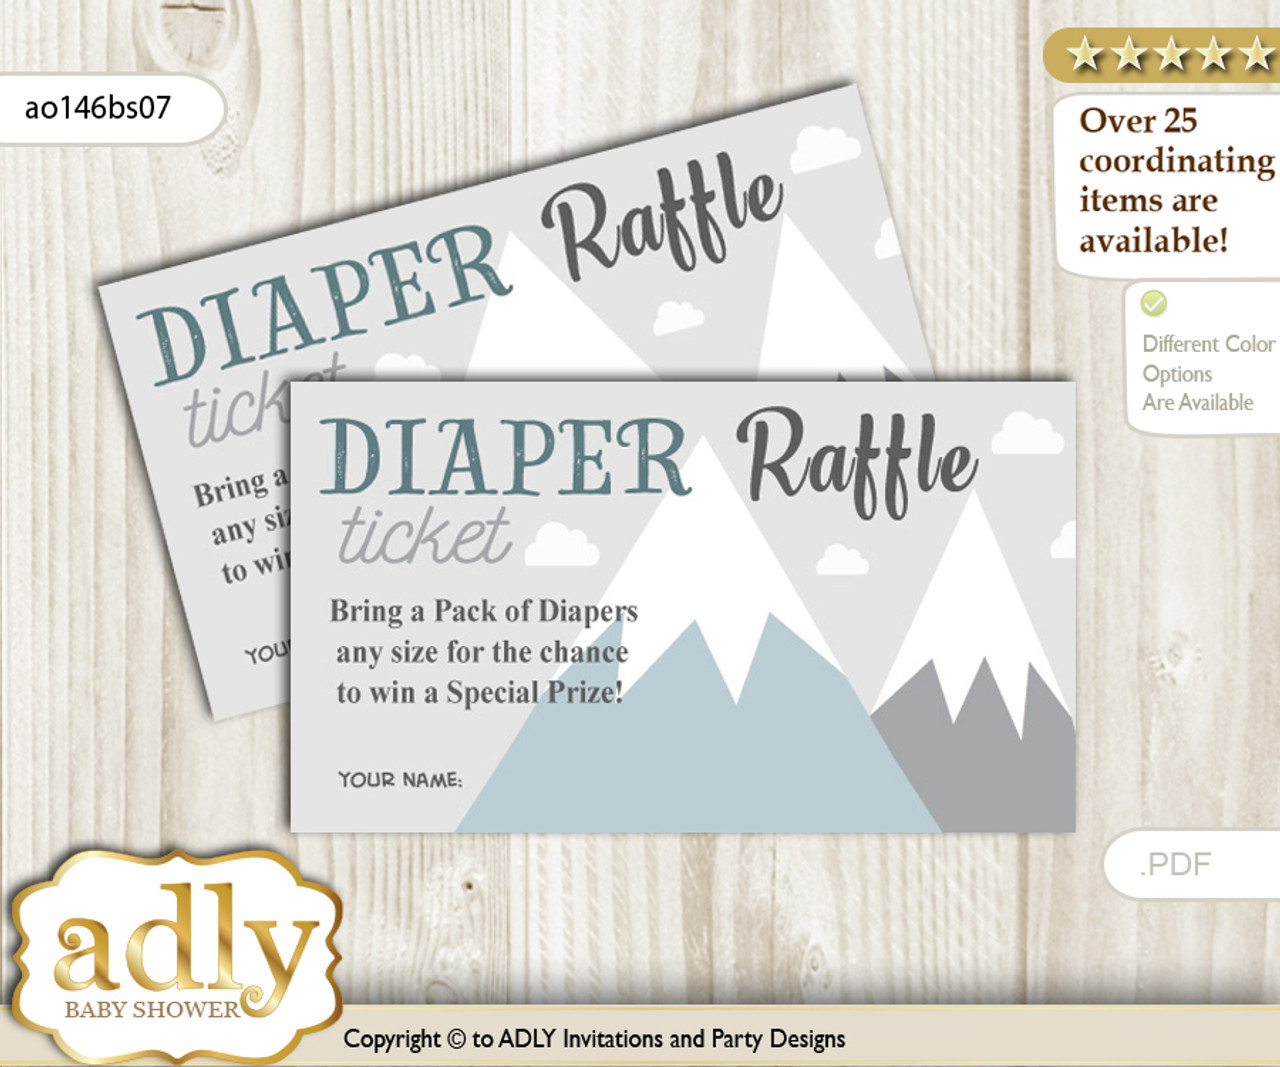 photograph relating to Tickets Printable named Experience Mountain Diaper Raffle Printable Tickets for Youngster Shower, Grey White, Boy